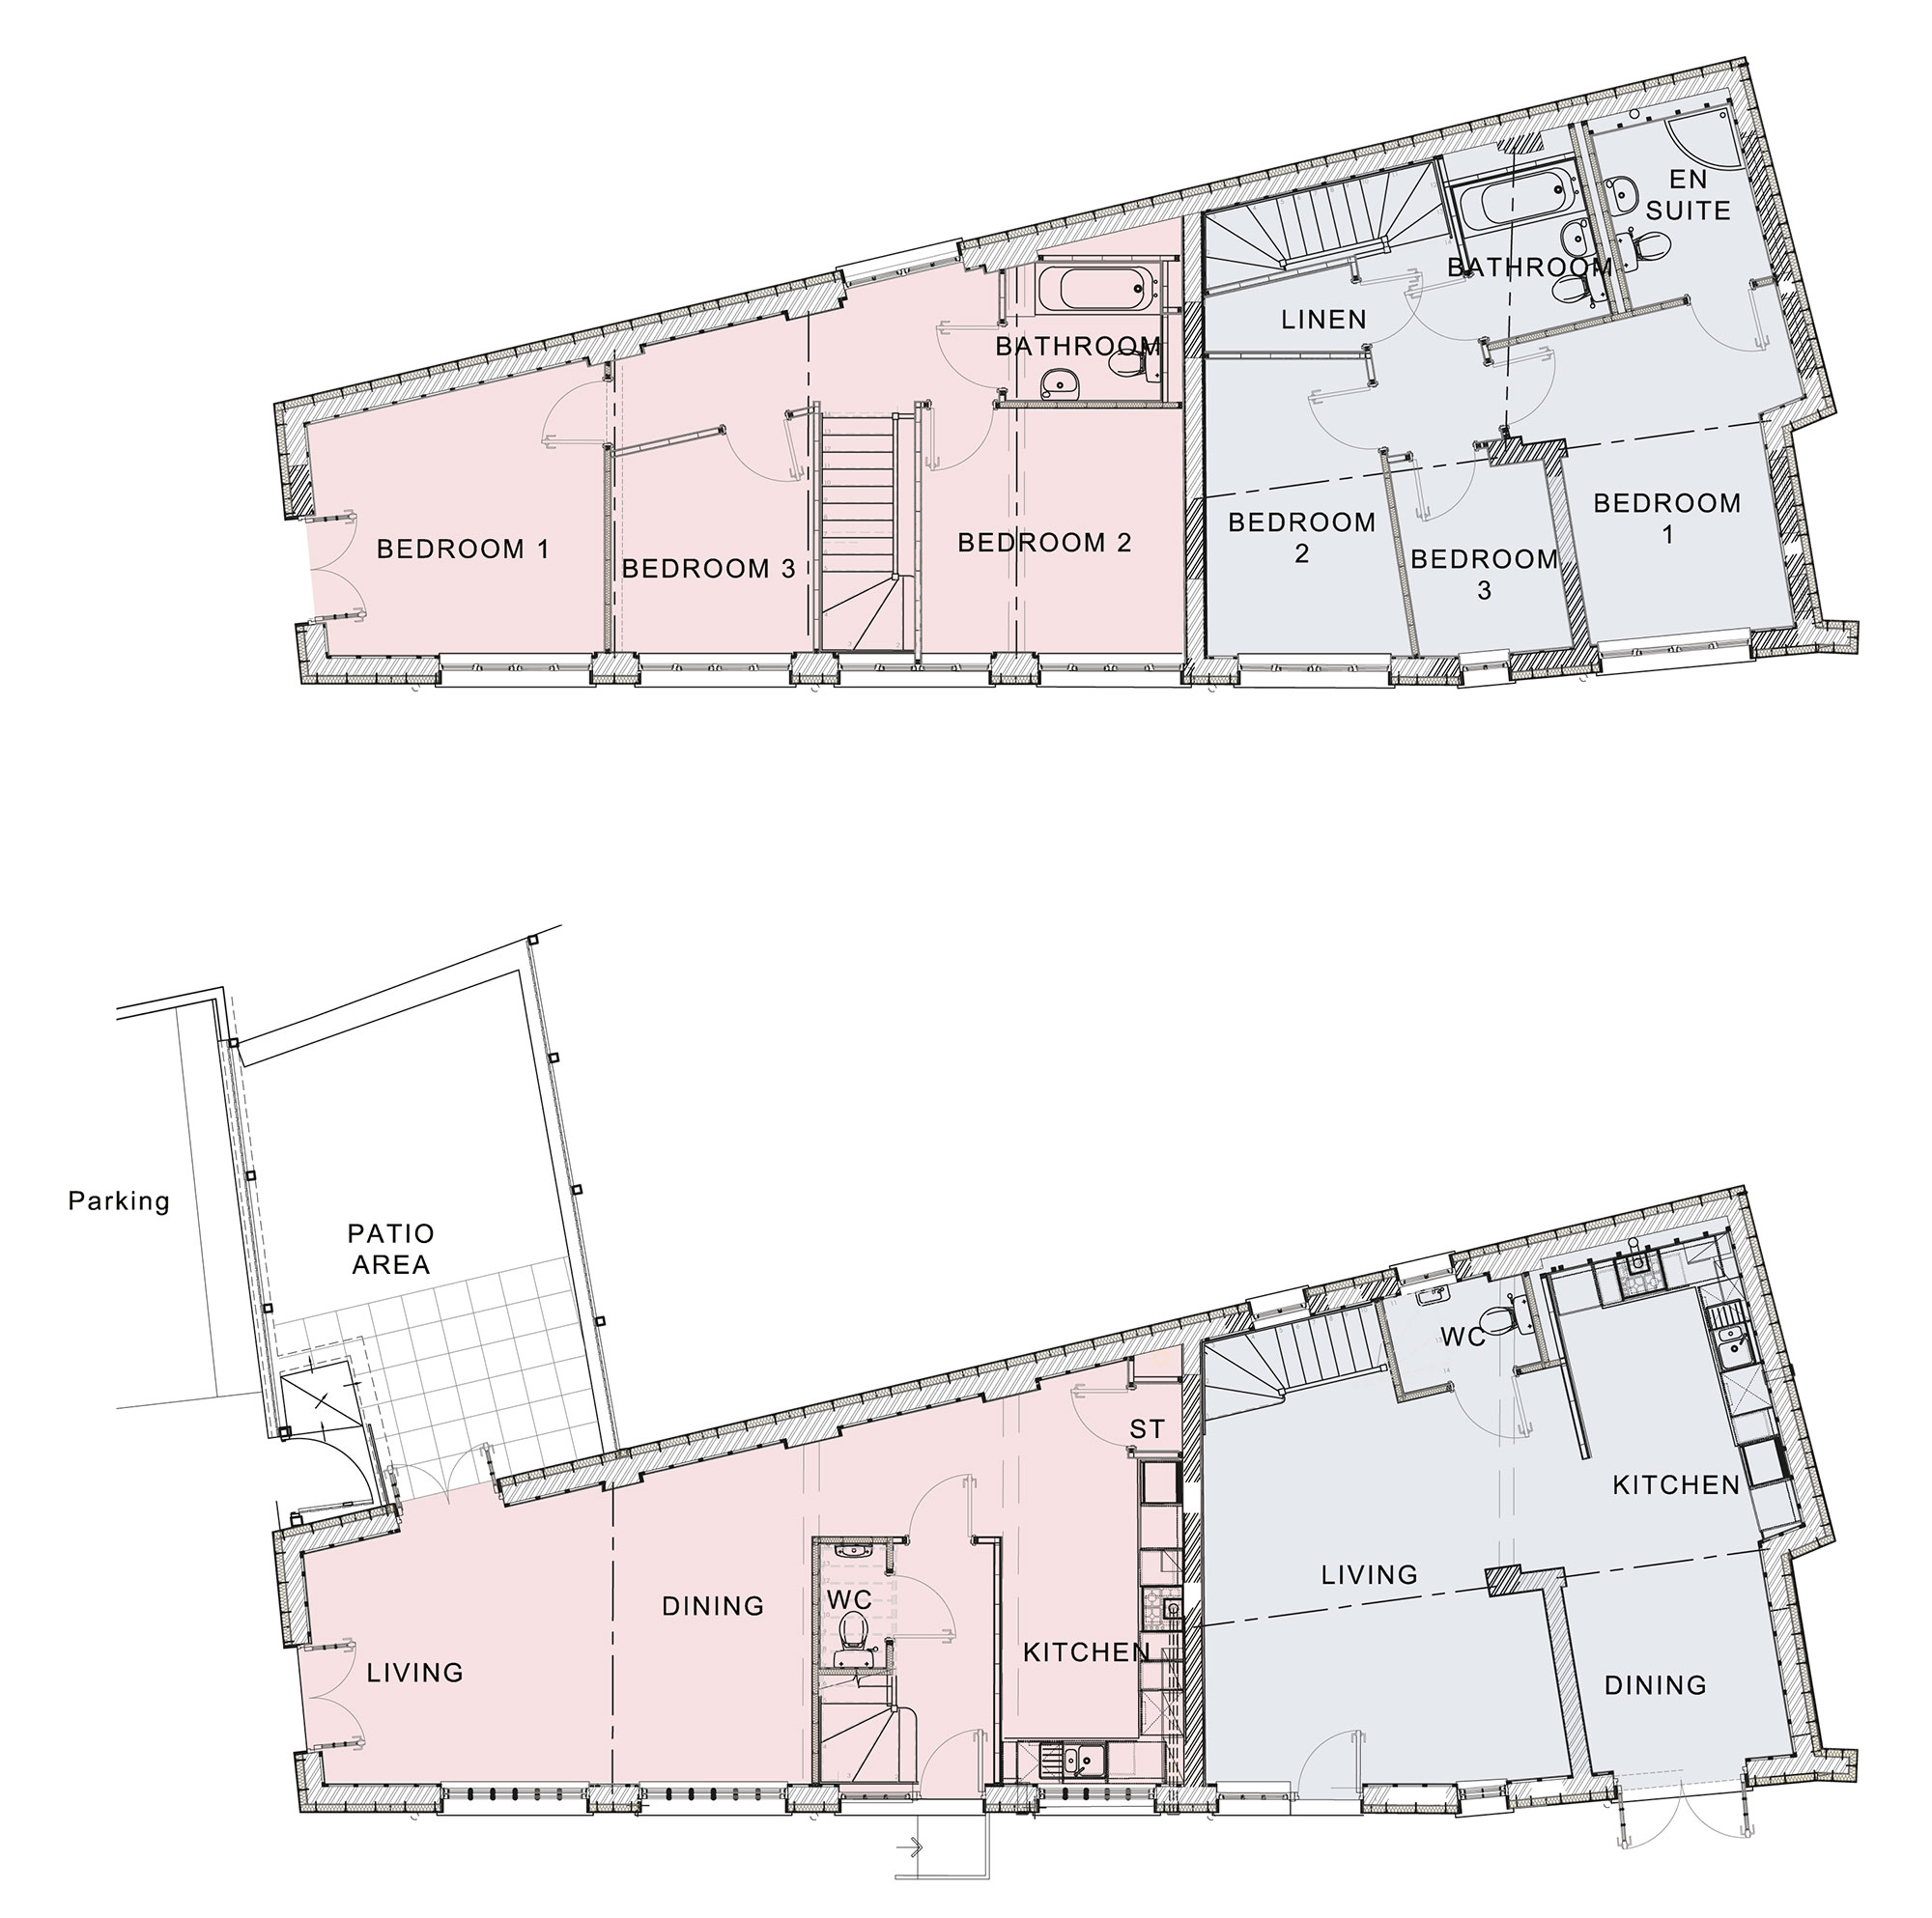 Ground and first floors - click on plans to enlarge